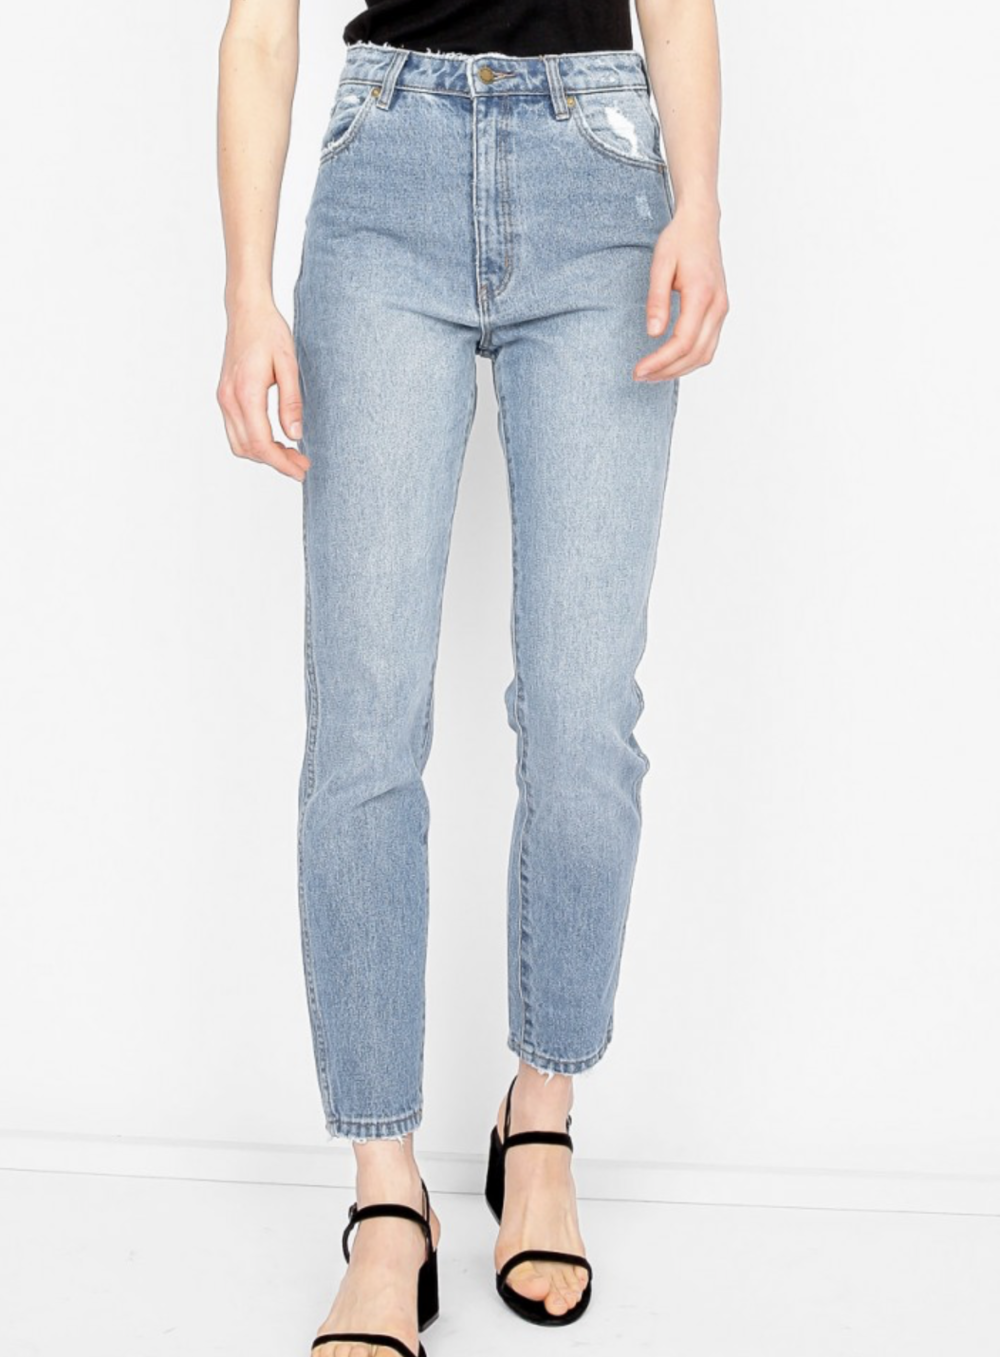 Tried-and-true jeans